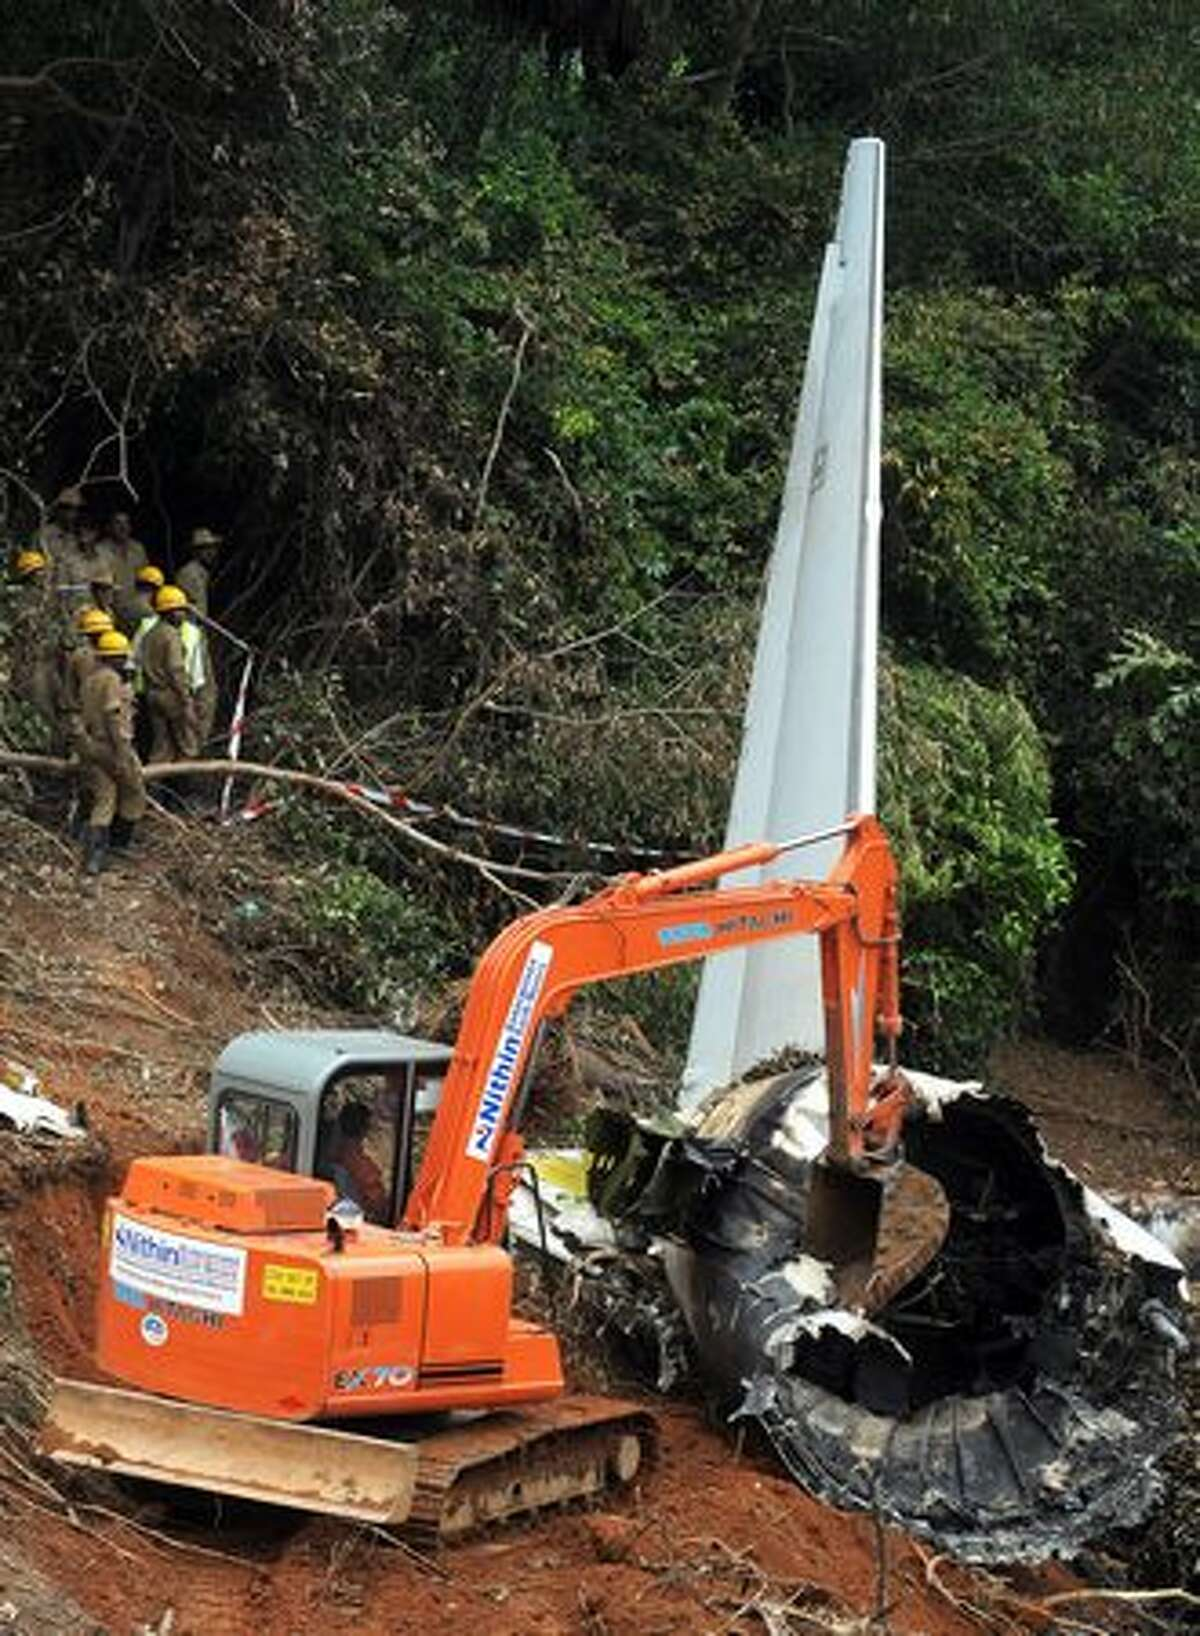 """An earth mover removes debris at the plane crash site of the Air India Express Boeing 737-800 in Mangalore. Investigators combed the wreckage of an Air India Express jet that crashed into a forested gorge with the loss of 158 lives, searching for the """"black box"""" data recorder."""